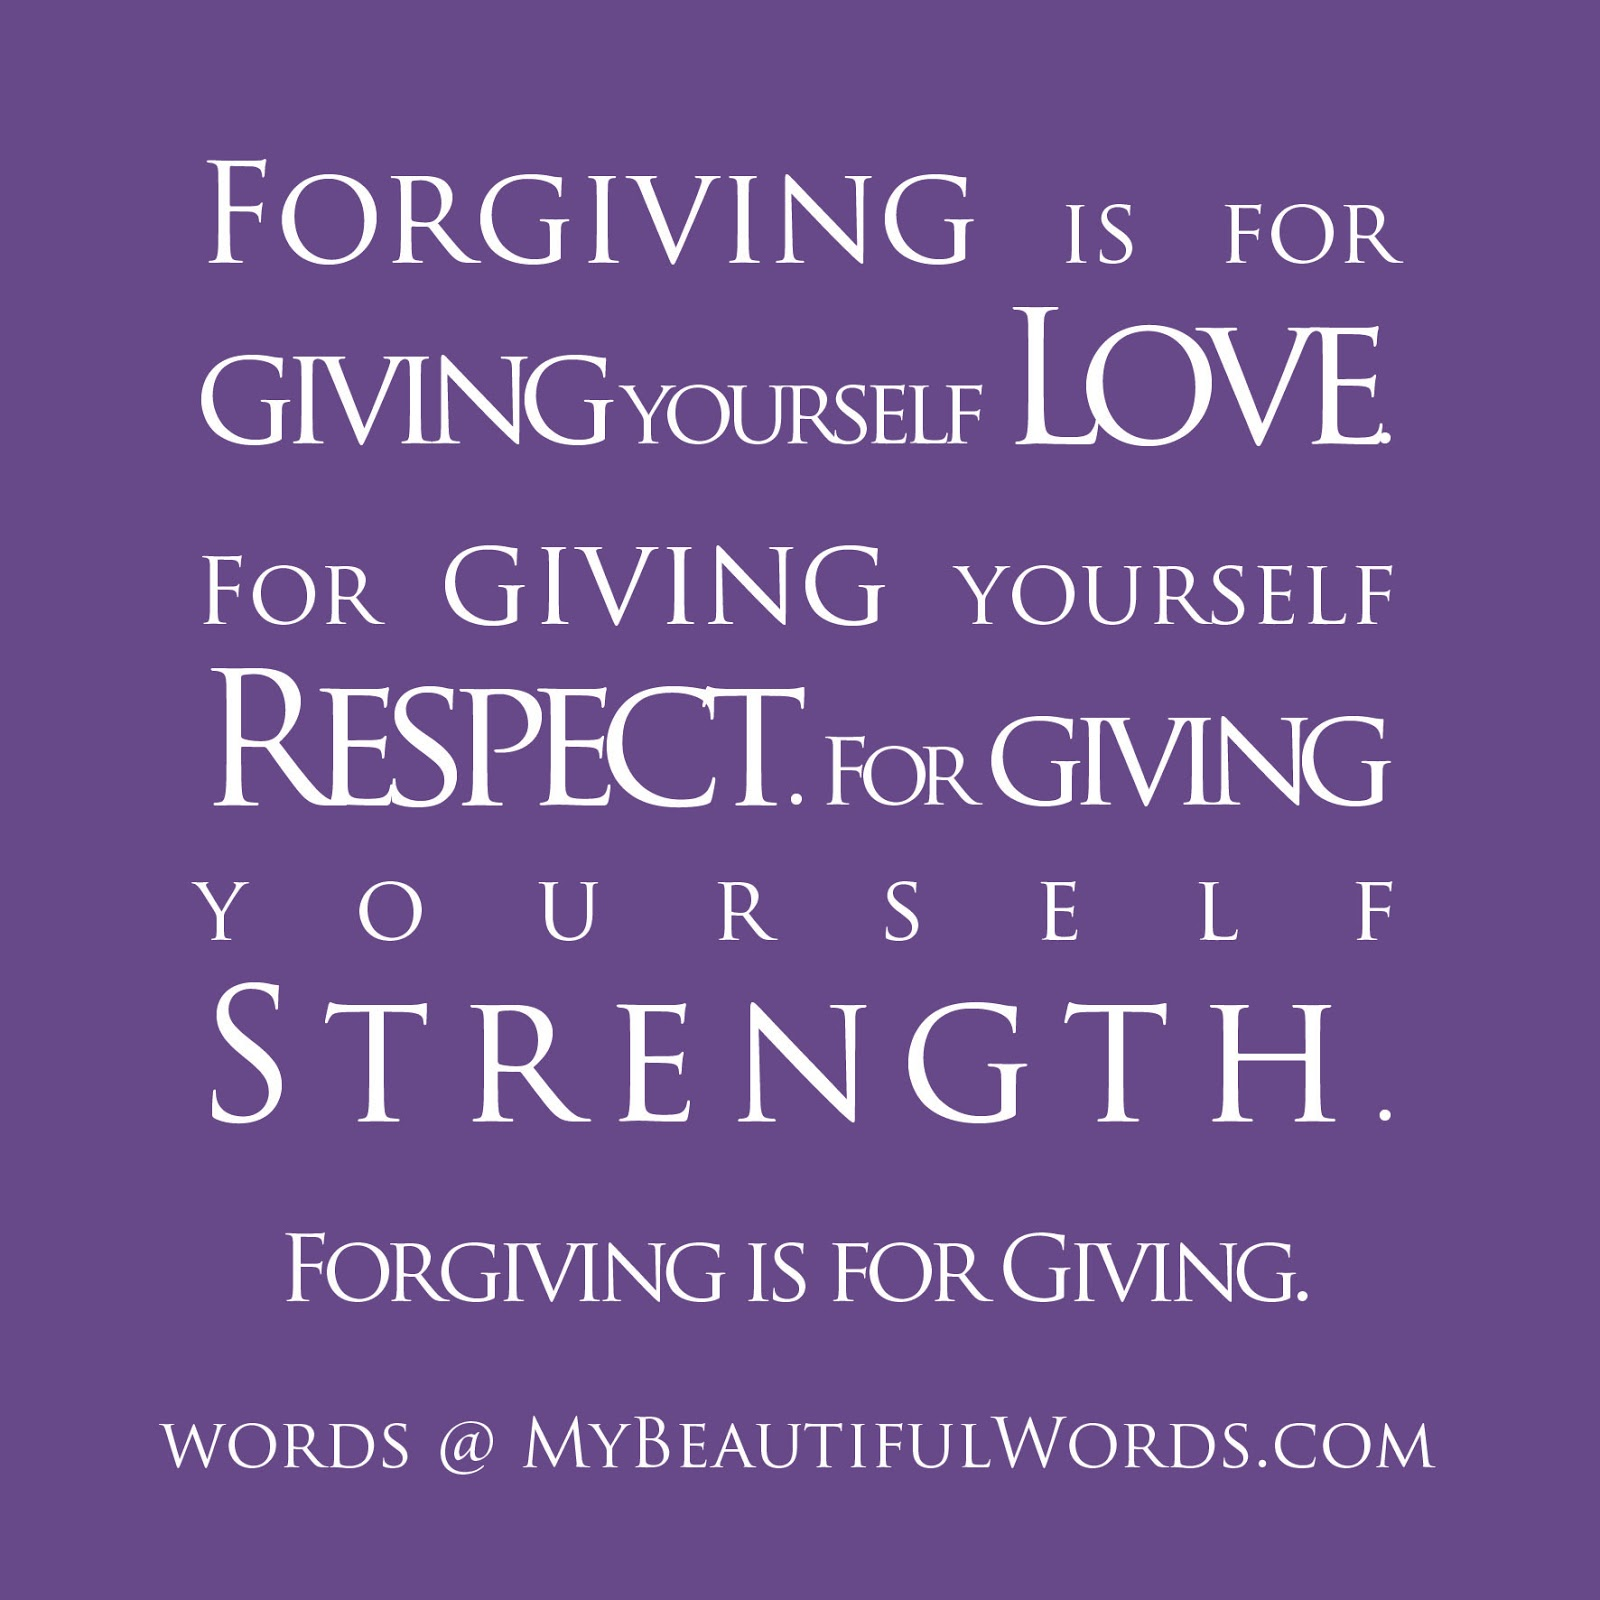 Quotes About Asking For Forgiveness (62 Quotes